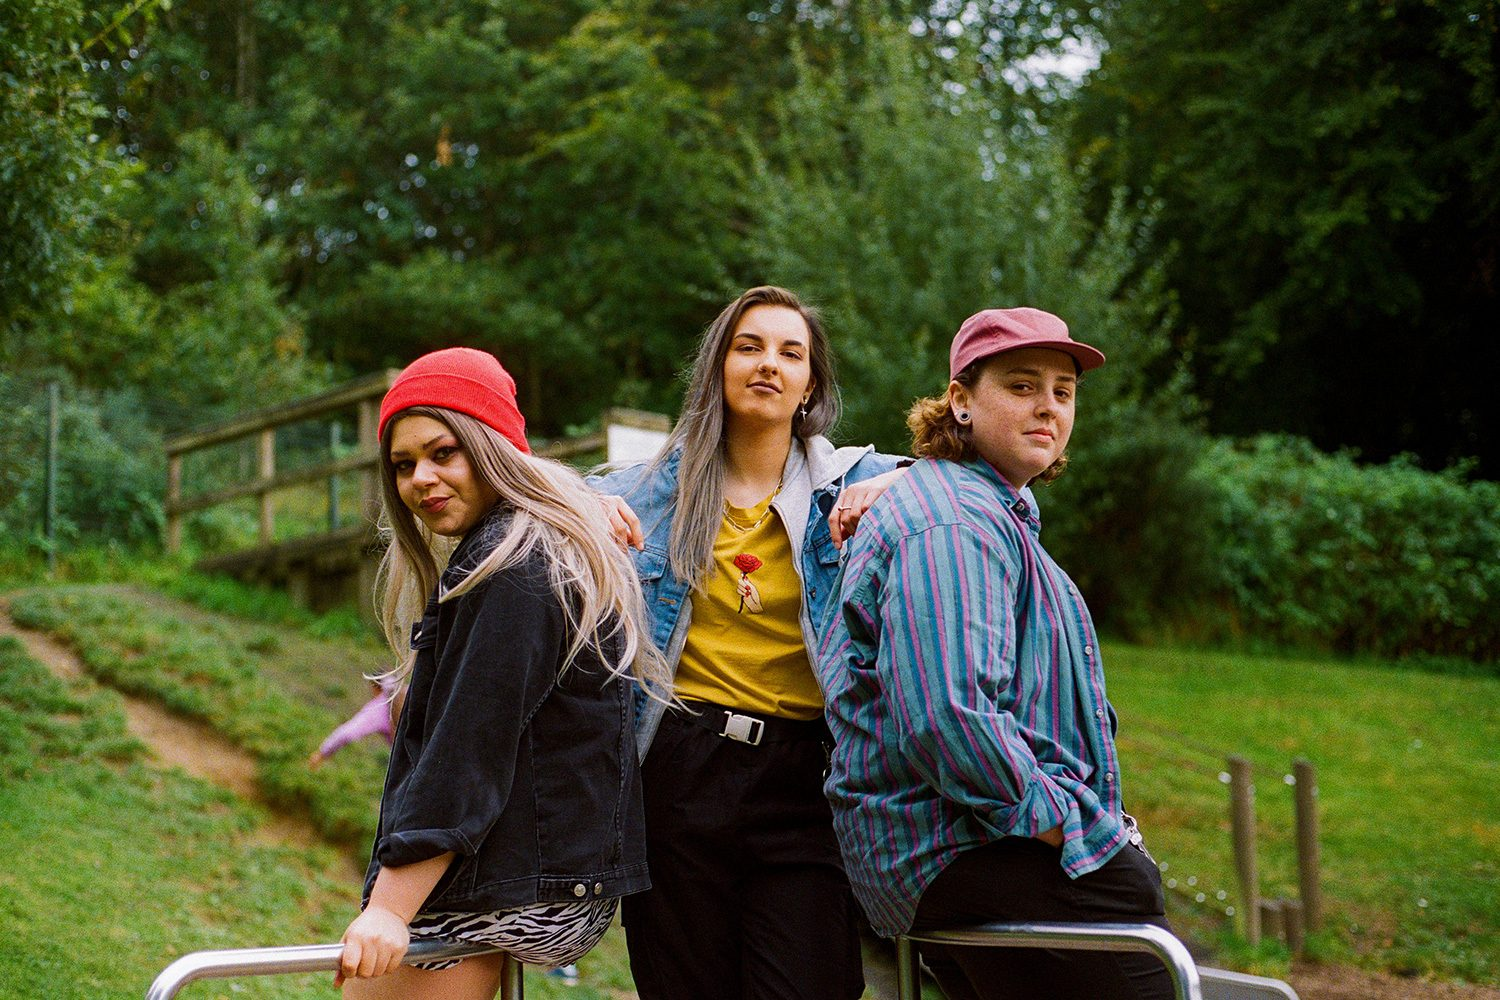 Cherym have announced an upcoming EP with new single, 'We're Just Friends'